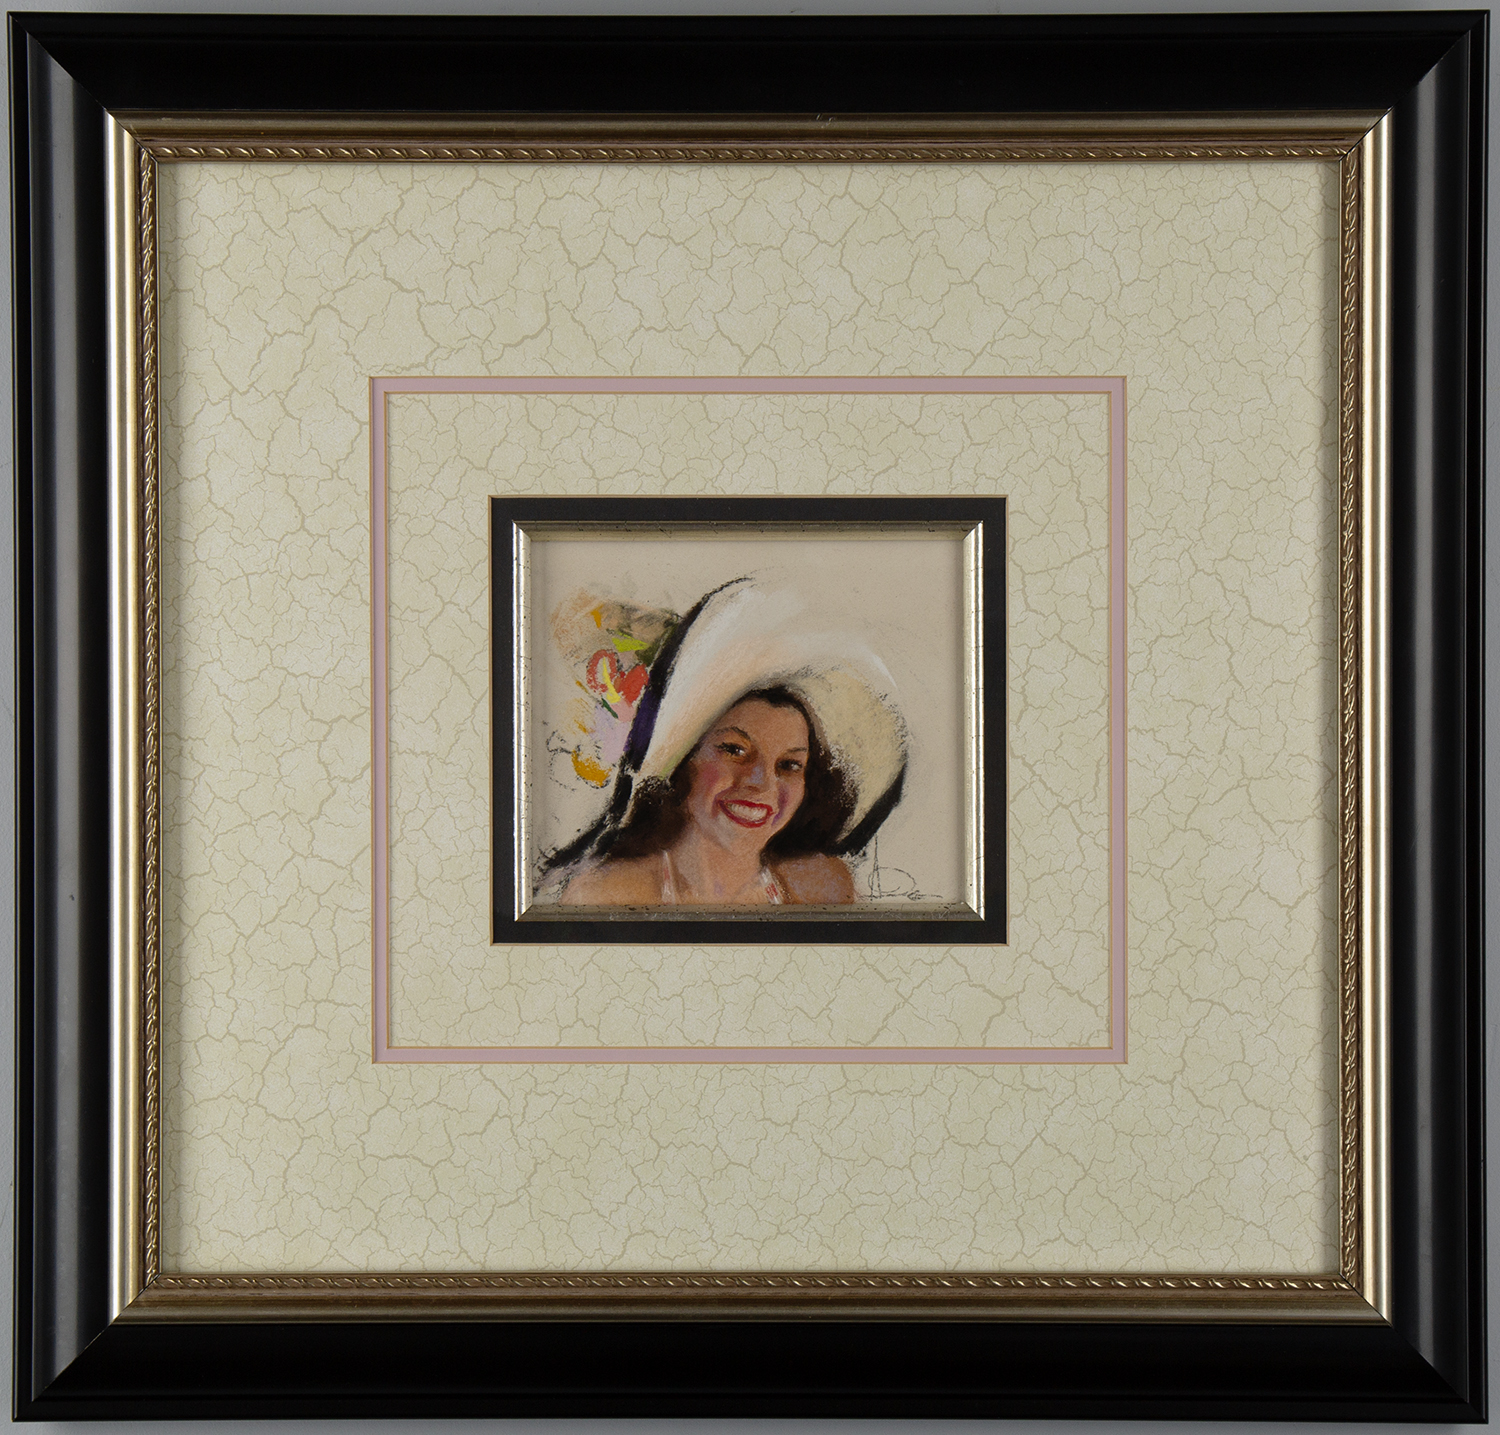 The pastel matted and framed under glass